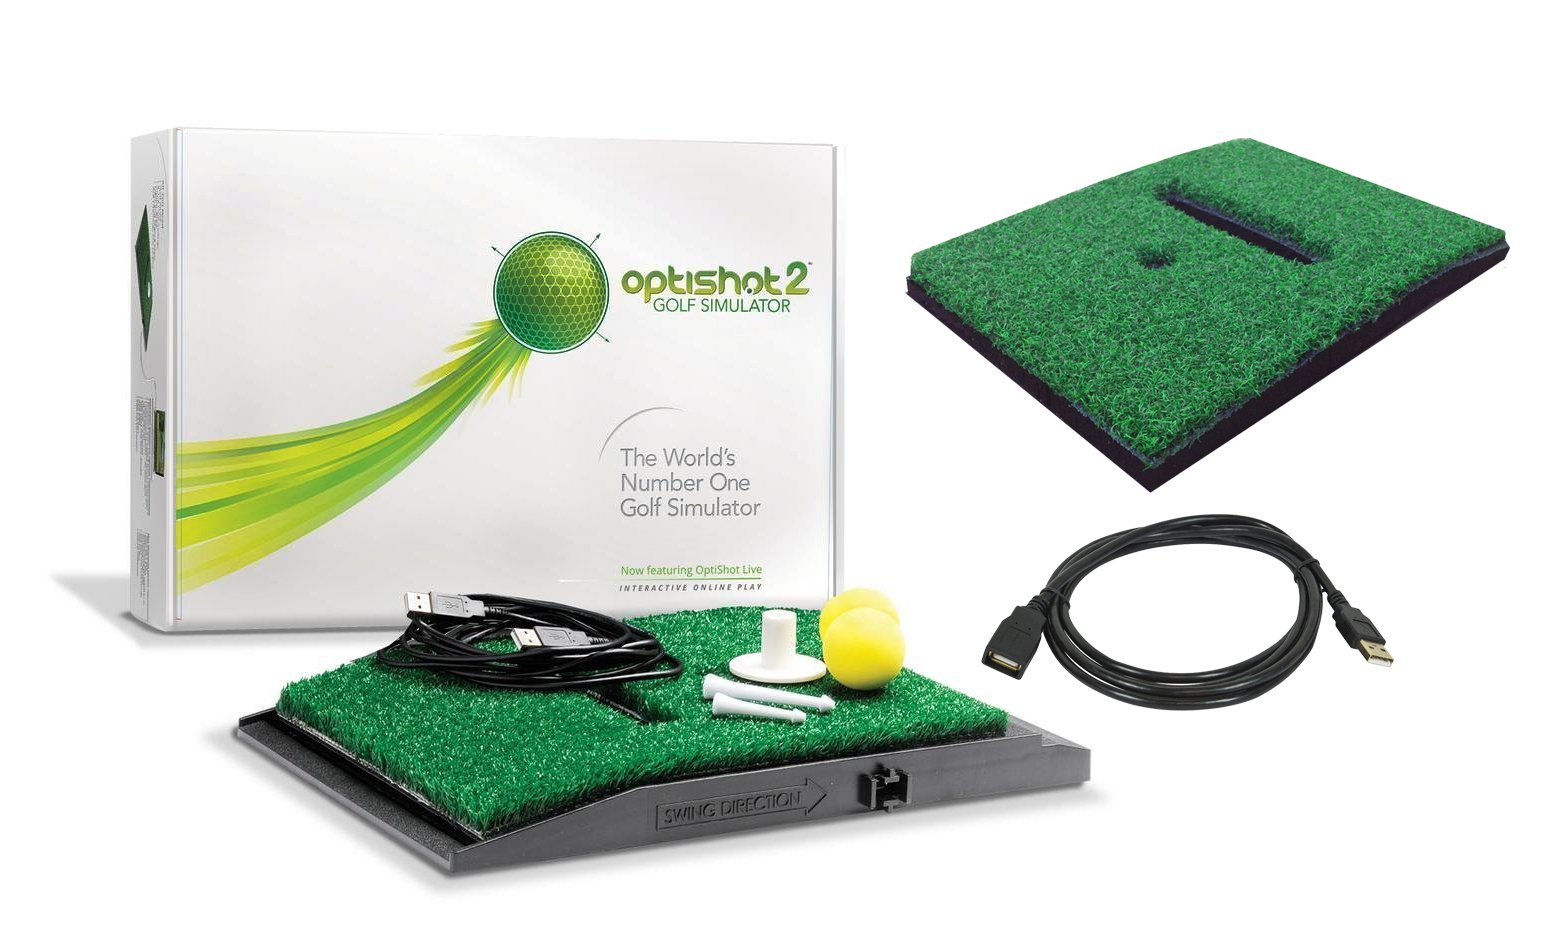 OptiShot 2 Golf Simulator (Mac & PC) Bundle | Includes Extra Replacement Turf and 15ft USB Extension Cable